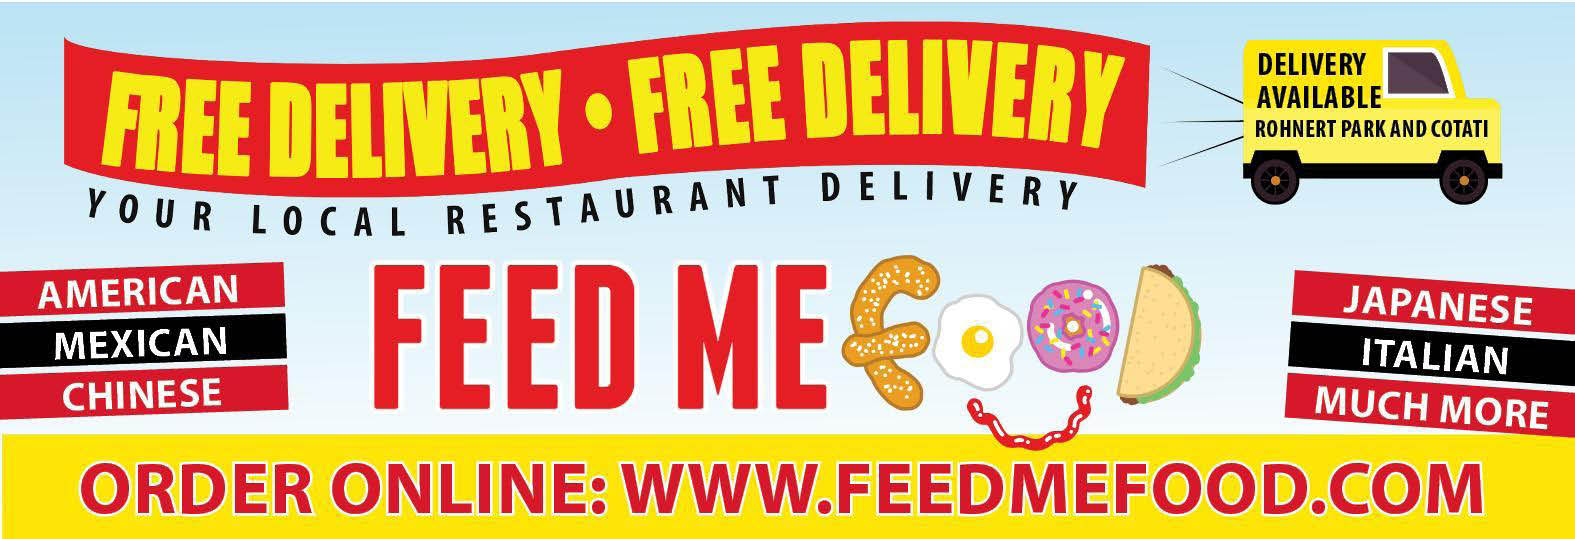 Free Delivery Order Online at FeedMeFood.com banner